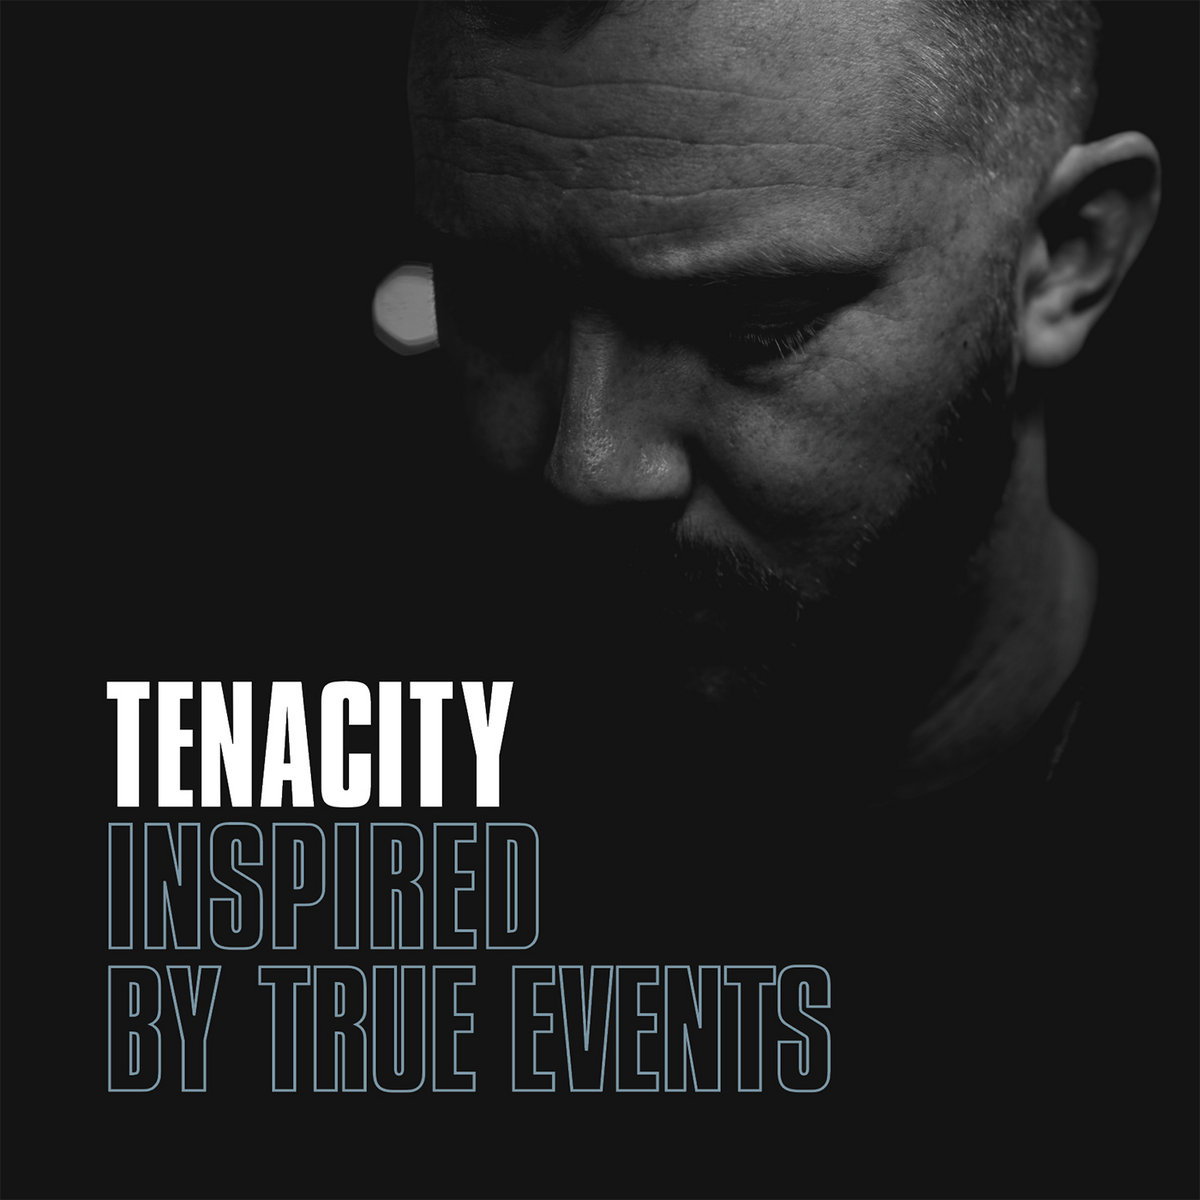 Inspired_by_true_events_tenacity